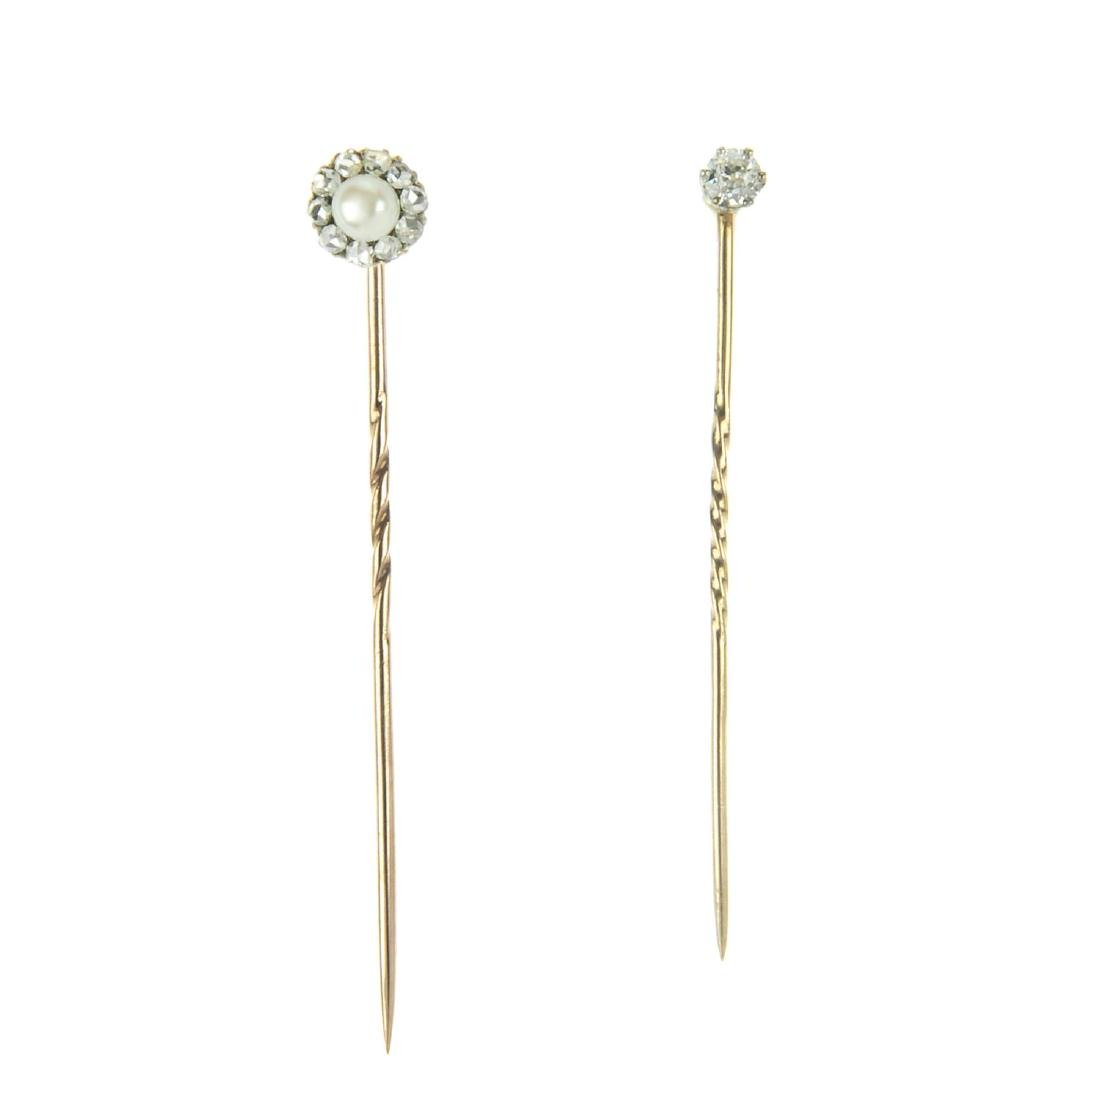 Two diamond-set stickpins. The first a single claw-set